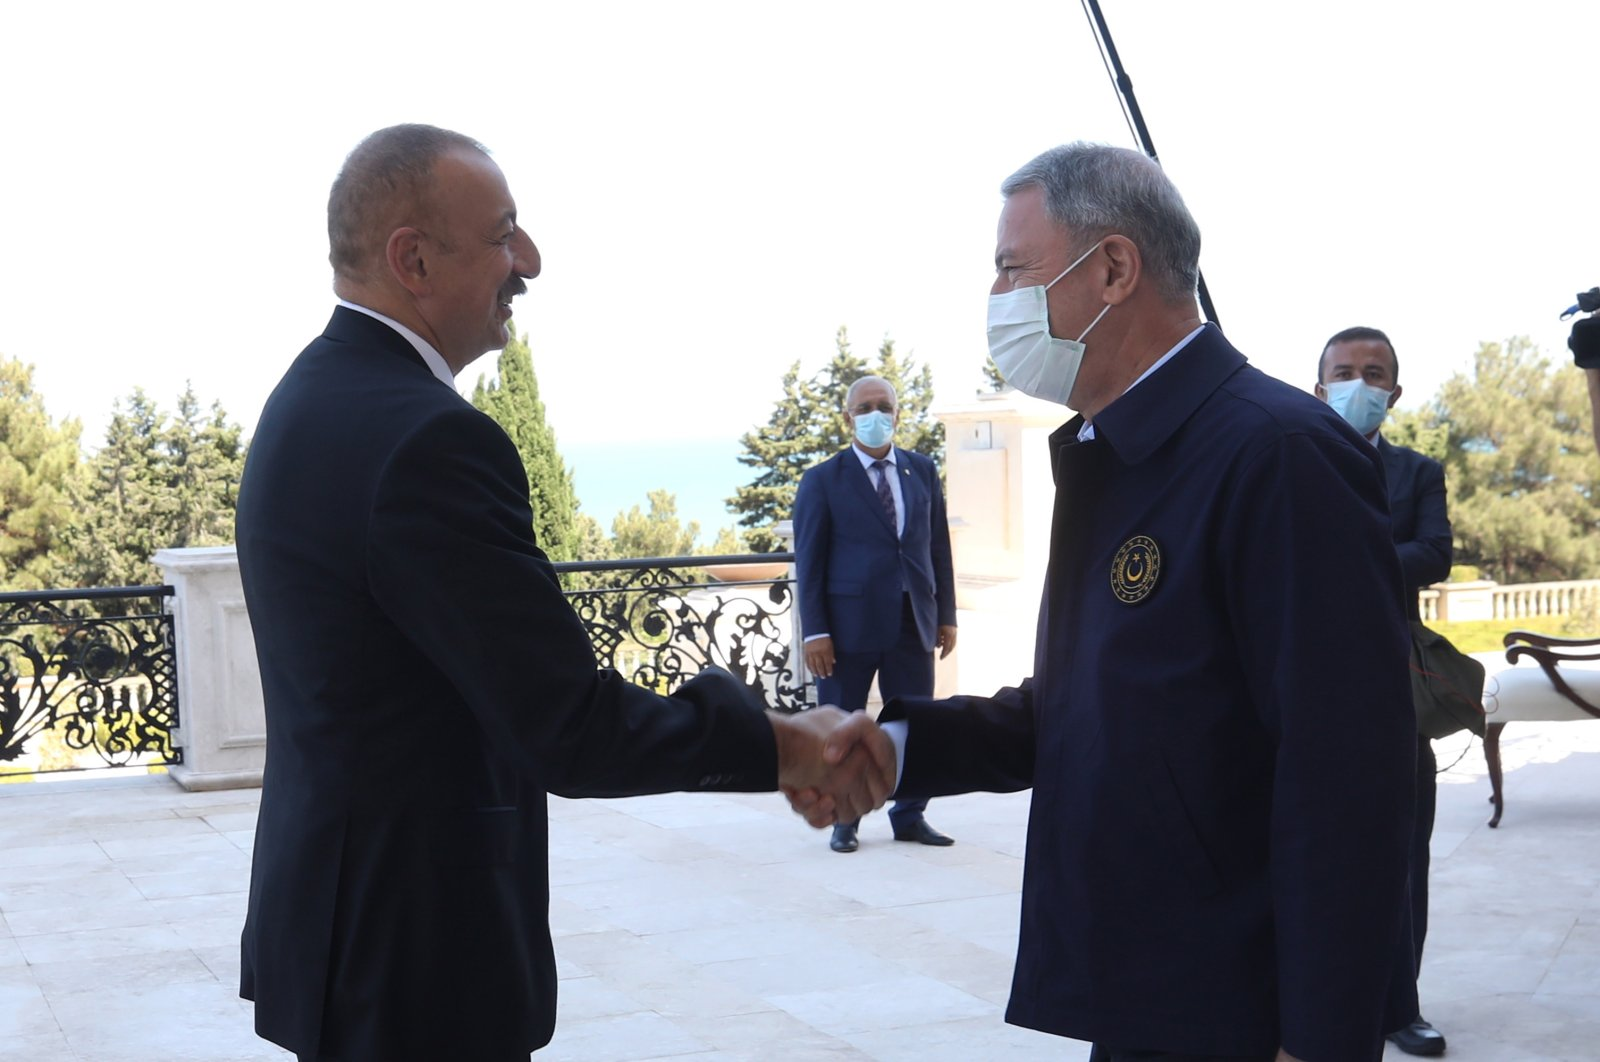 Azerbaijani President Ilham Aliyev receives Turkish Defense Minister Hulusi Akar in Baku, Aug. 13, 2020. (AA Photo)